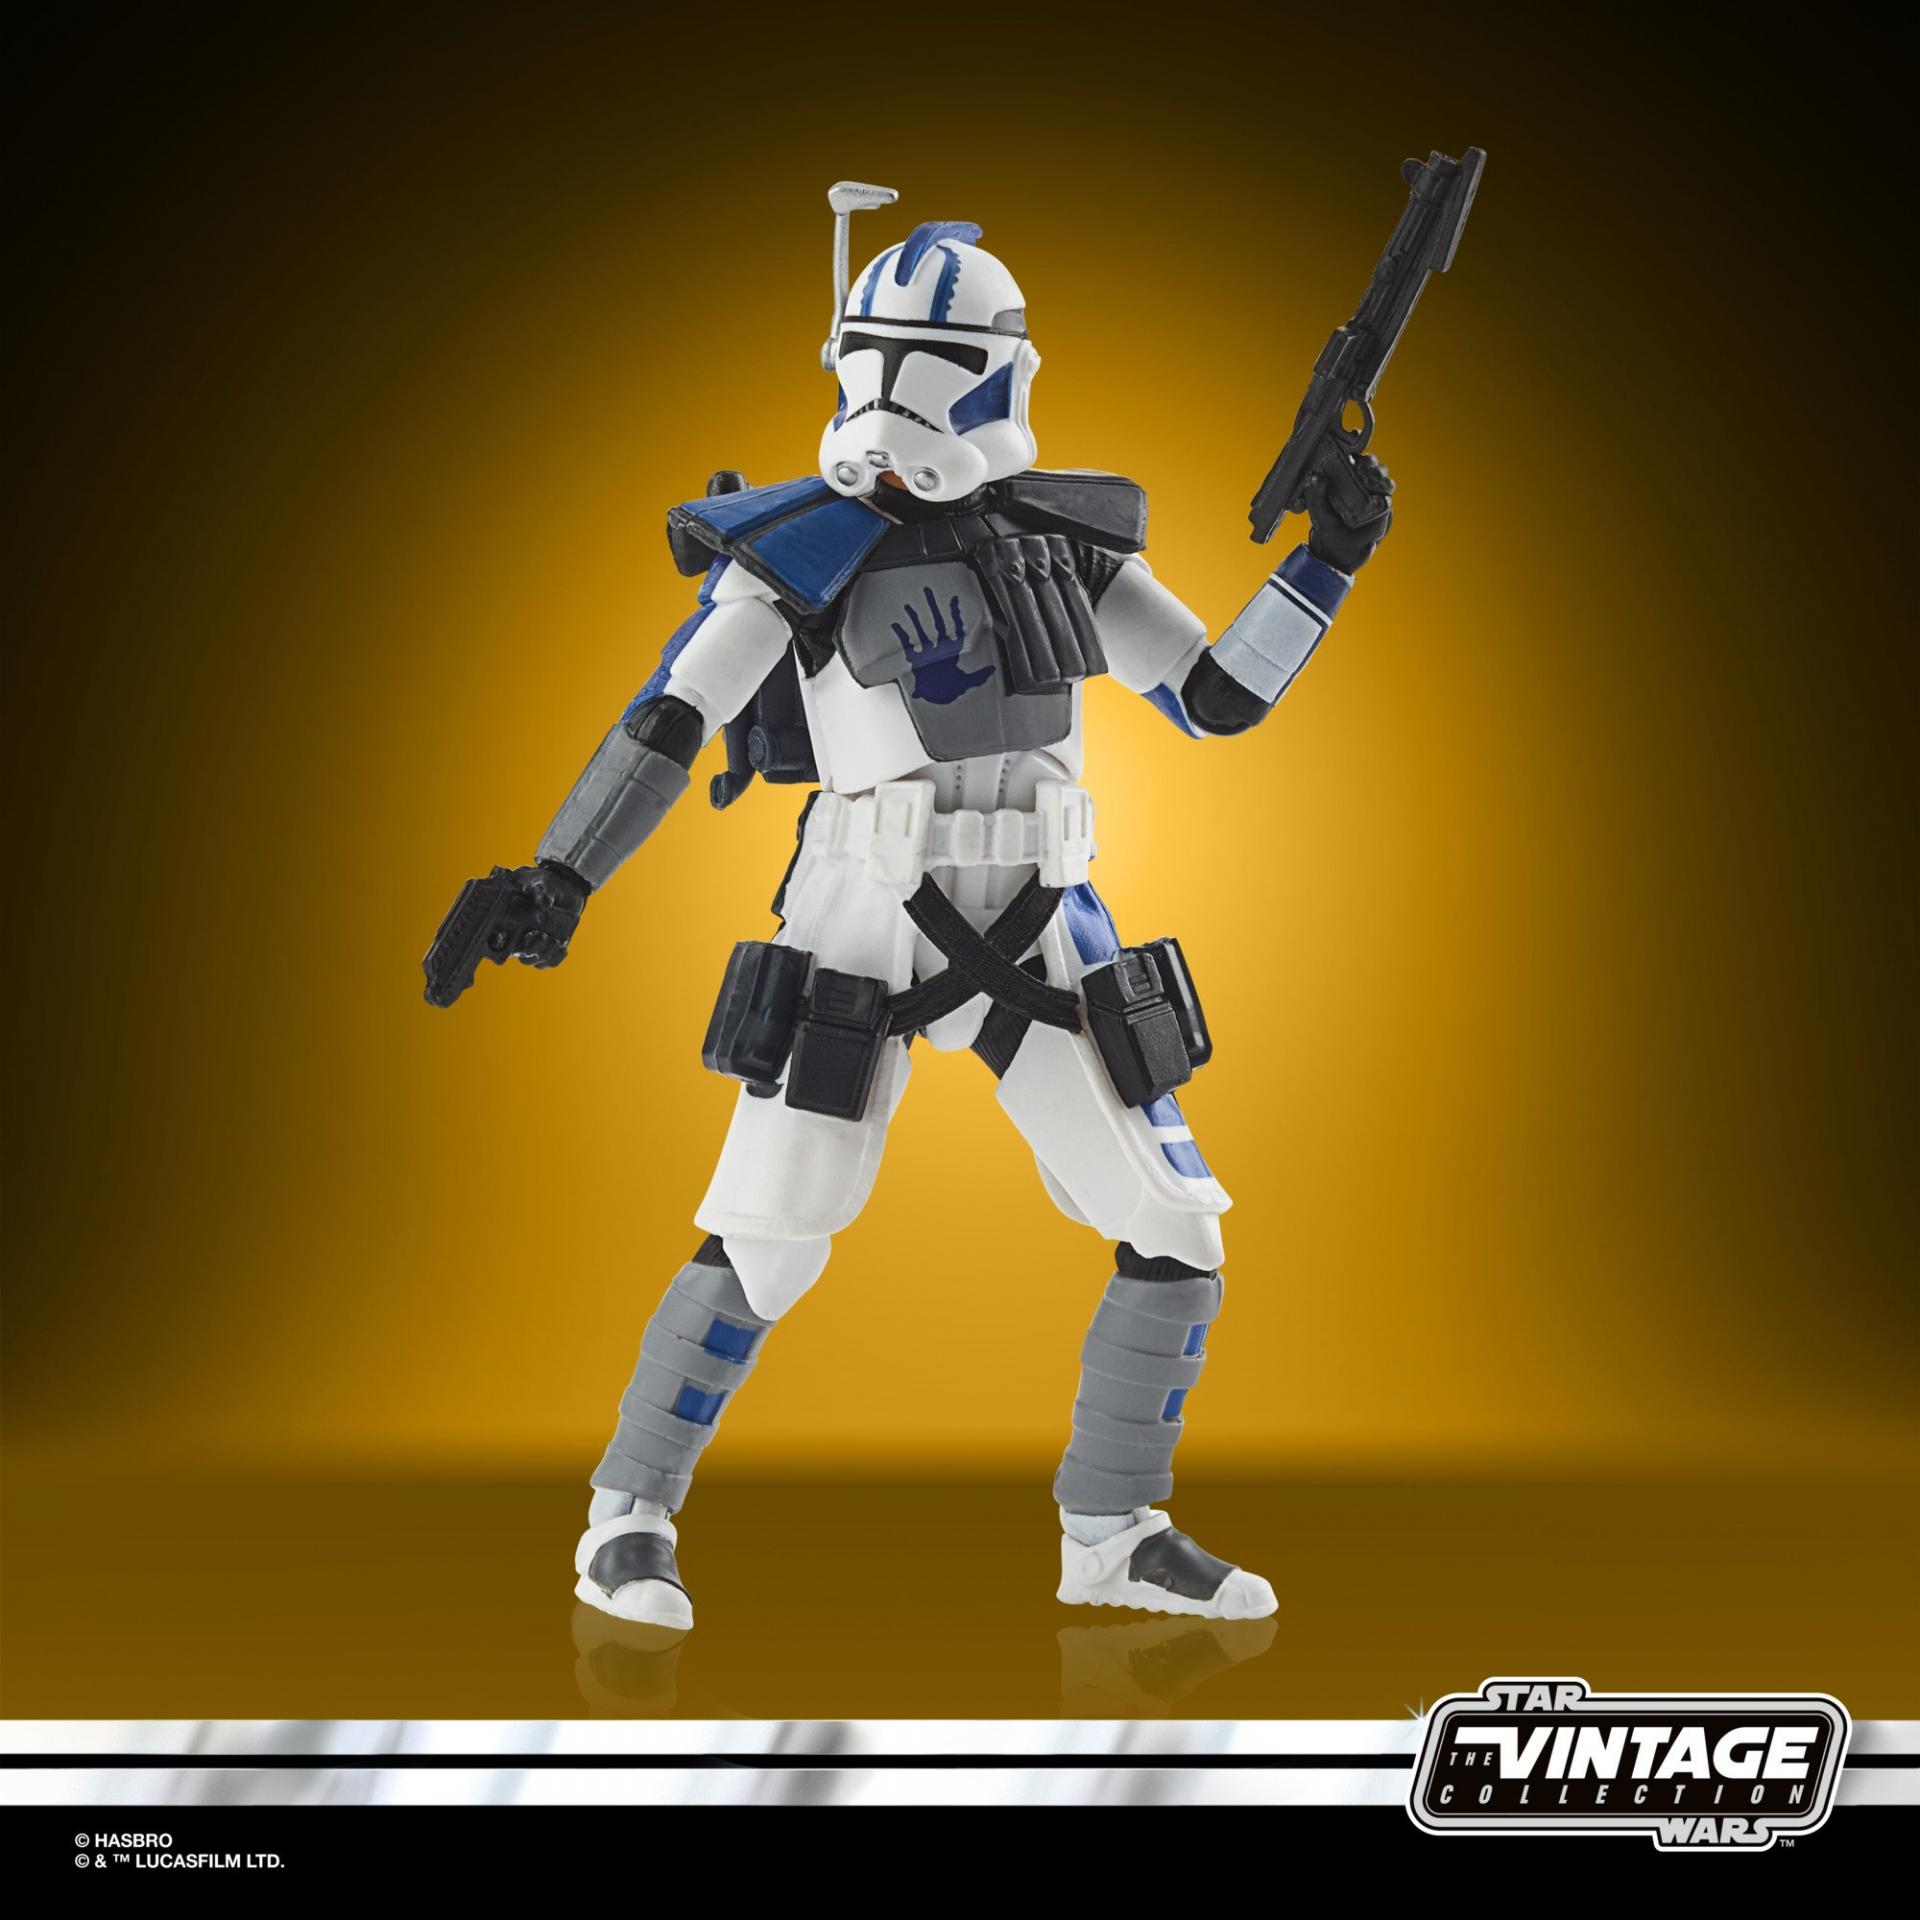 Star wars the vintage collection arc trooper echo4